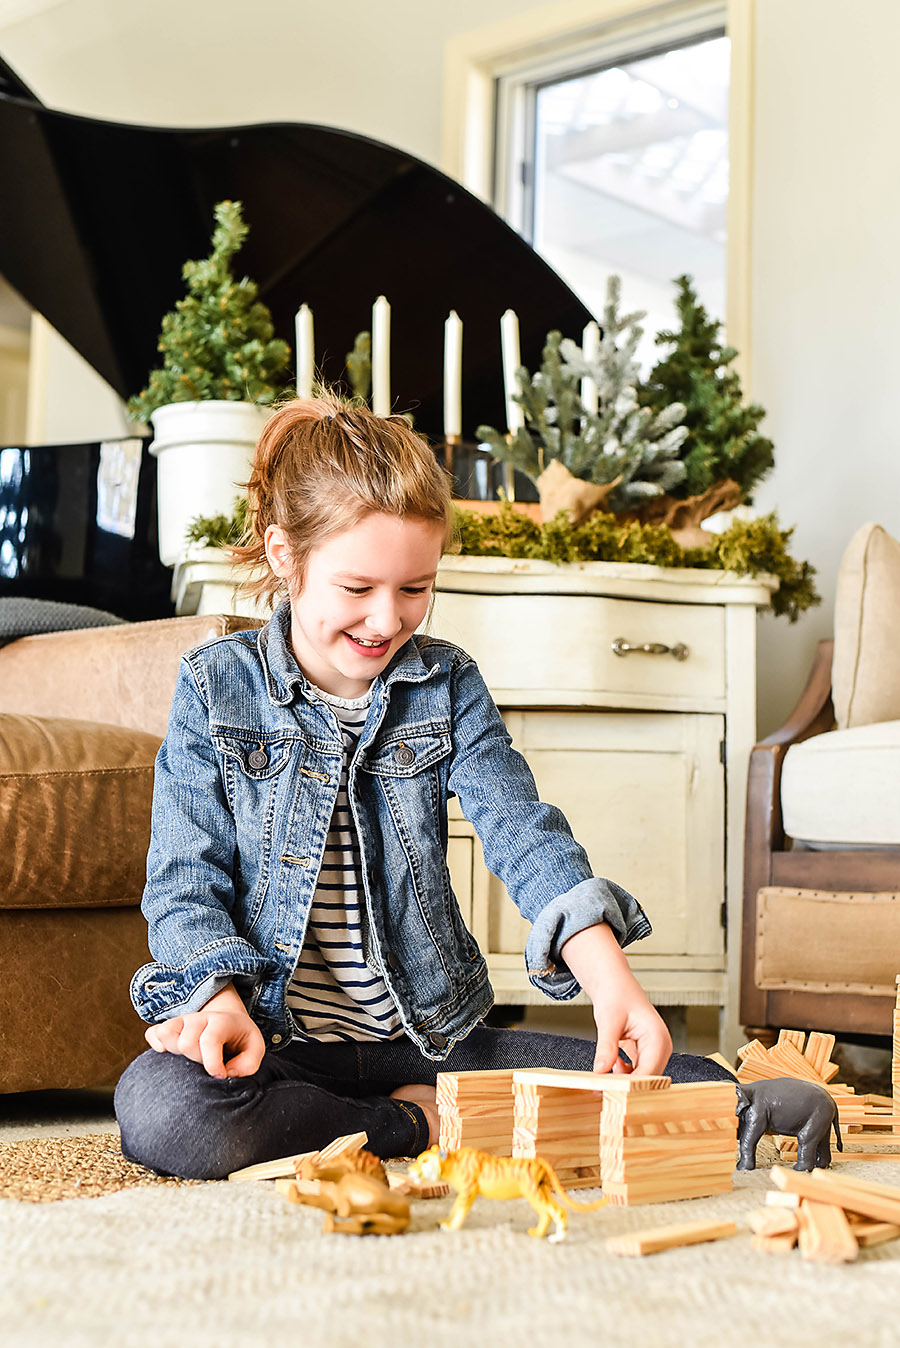 Brain Blox - Simple Toys Gift Ideas - Intentional Purposeful Gift Guide for Kids - Our Handcrafted Life